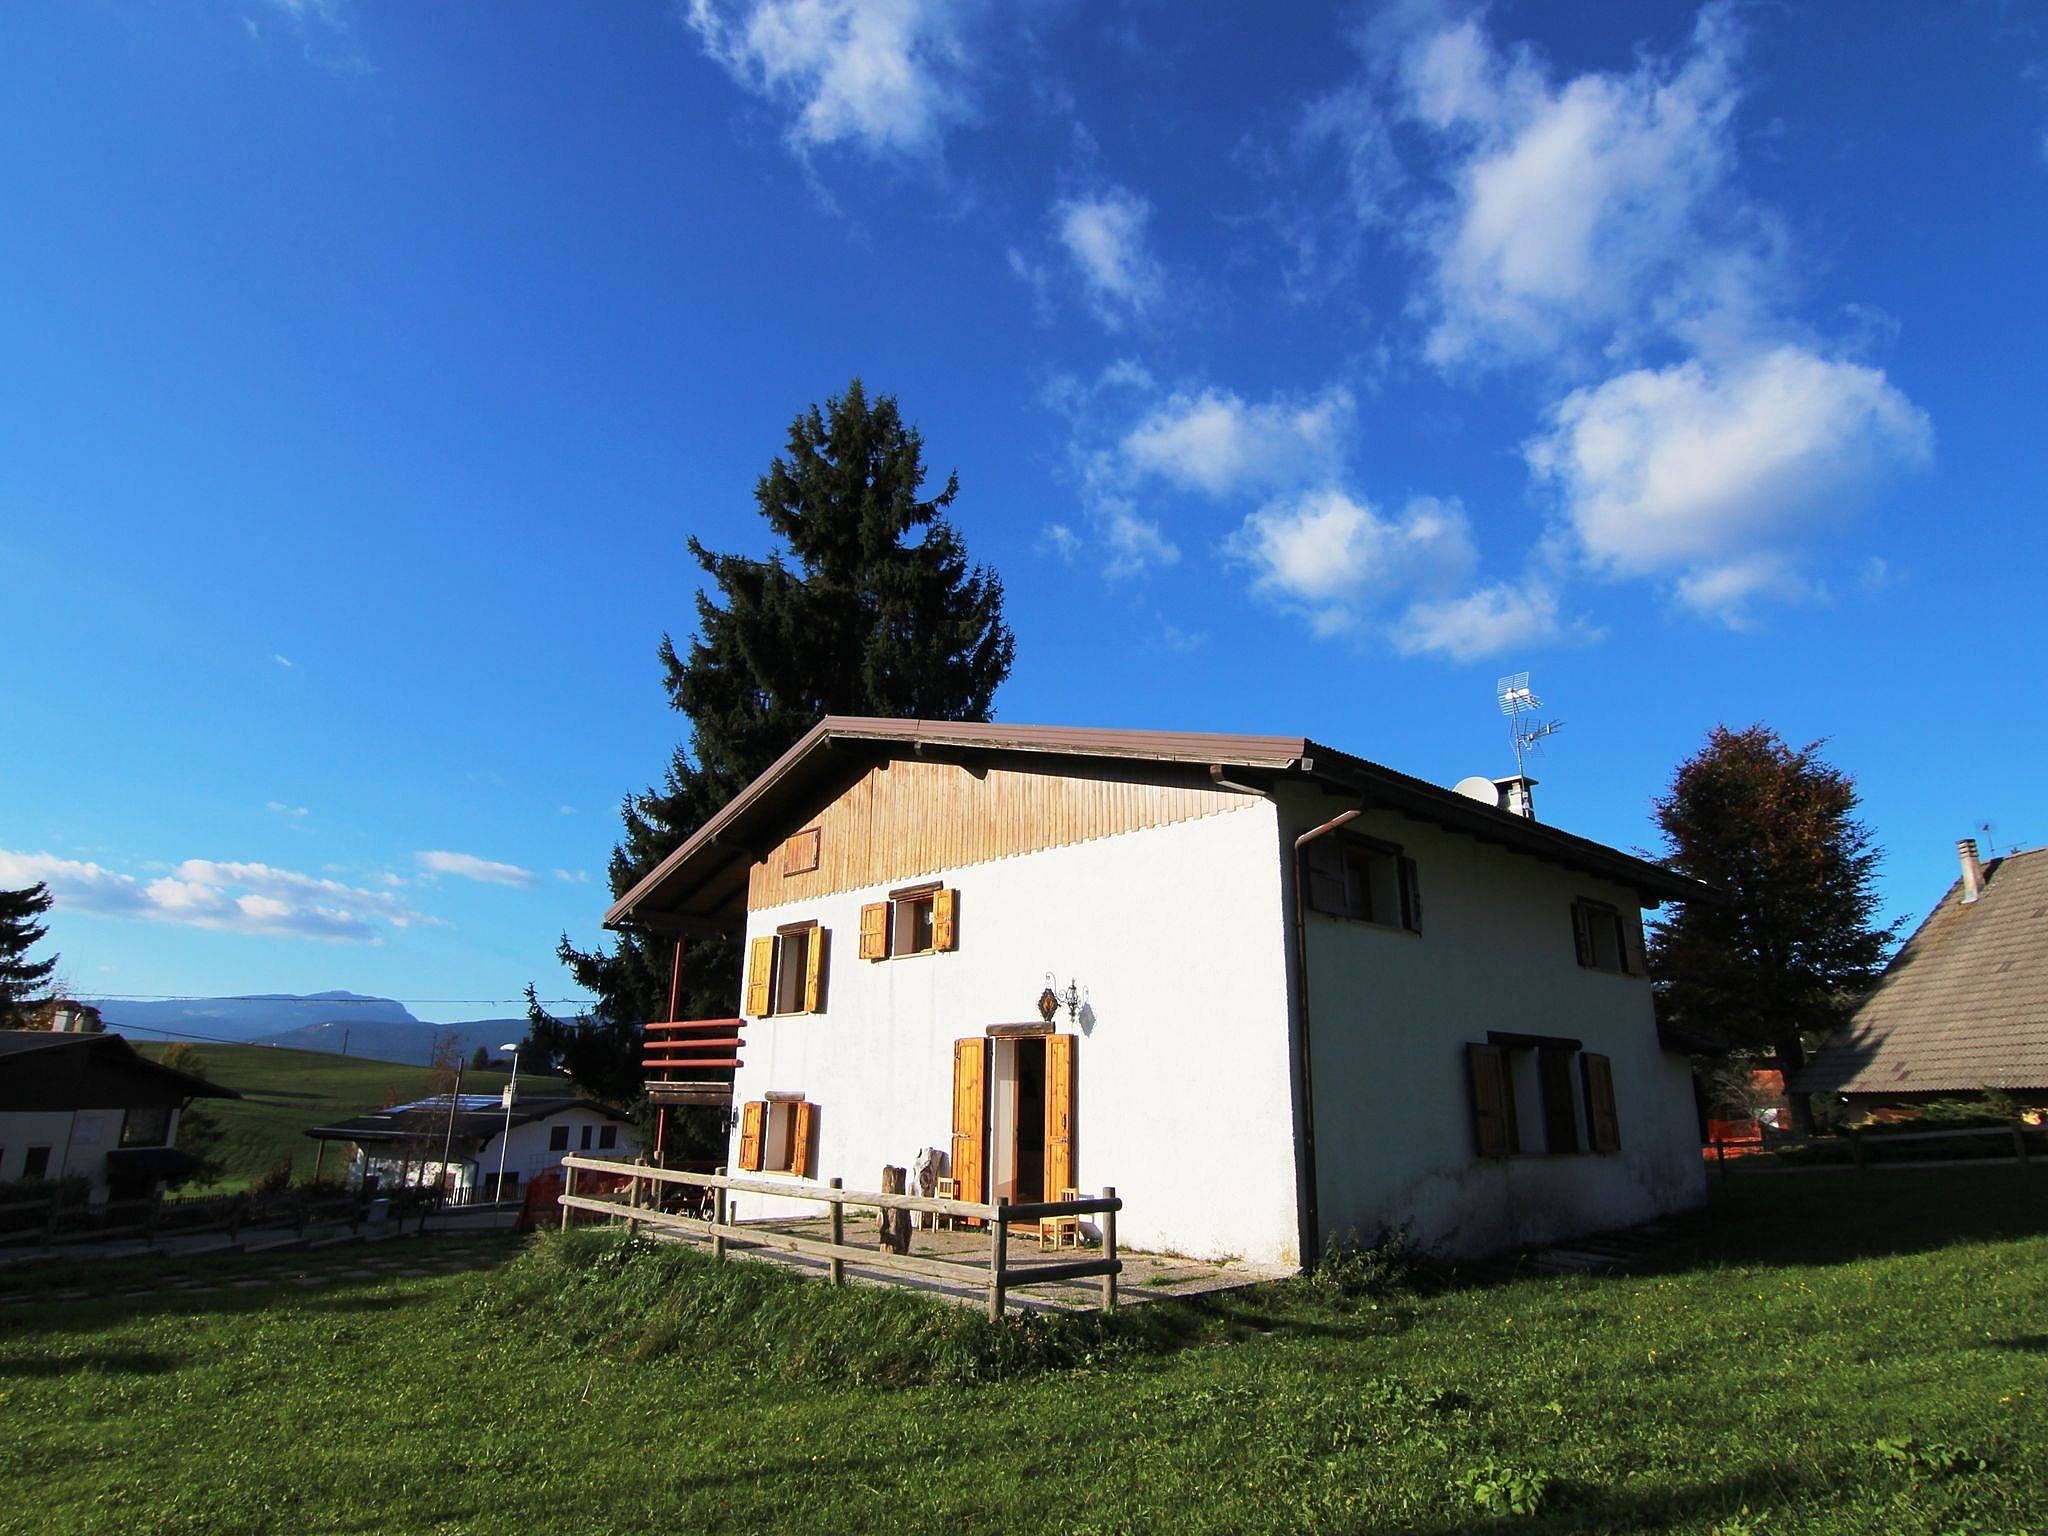 villa in affitto altopiano di asiago bertigo asiago